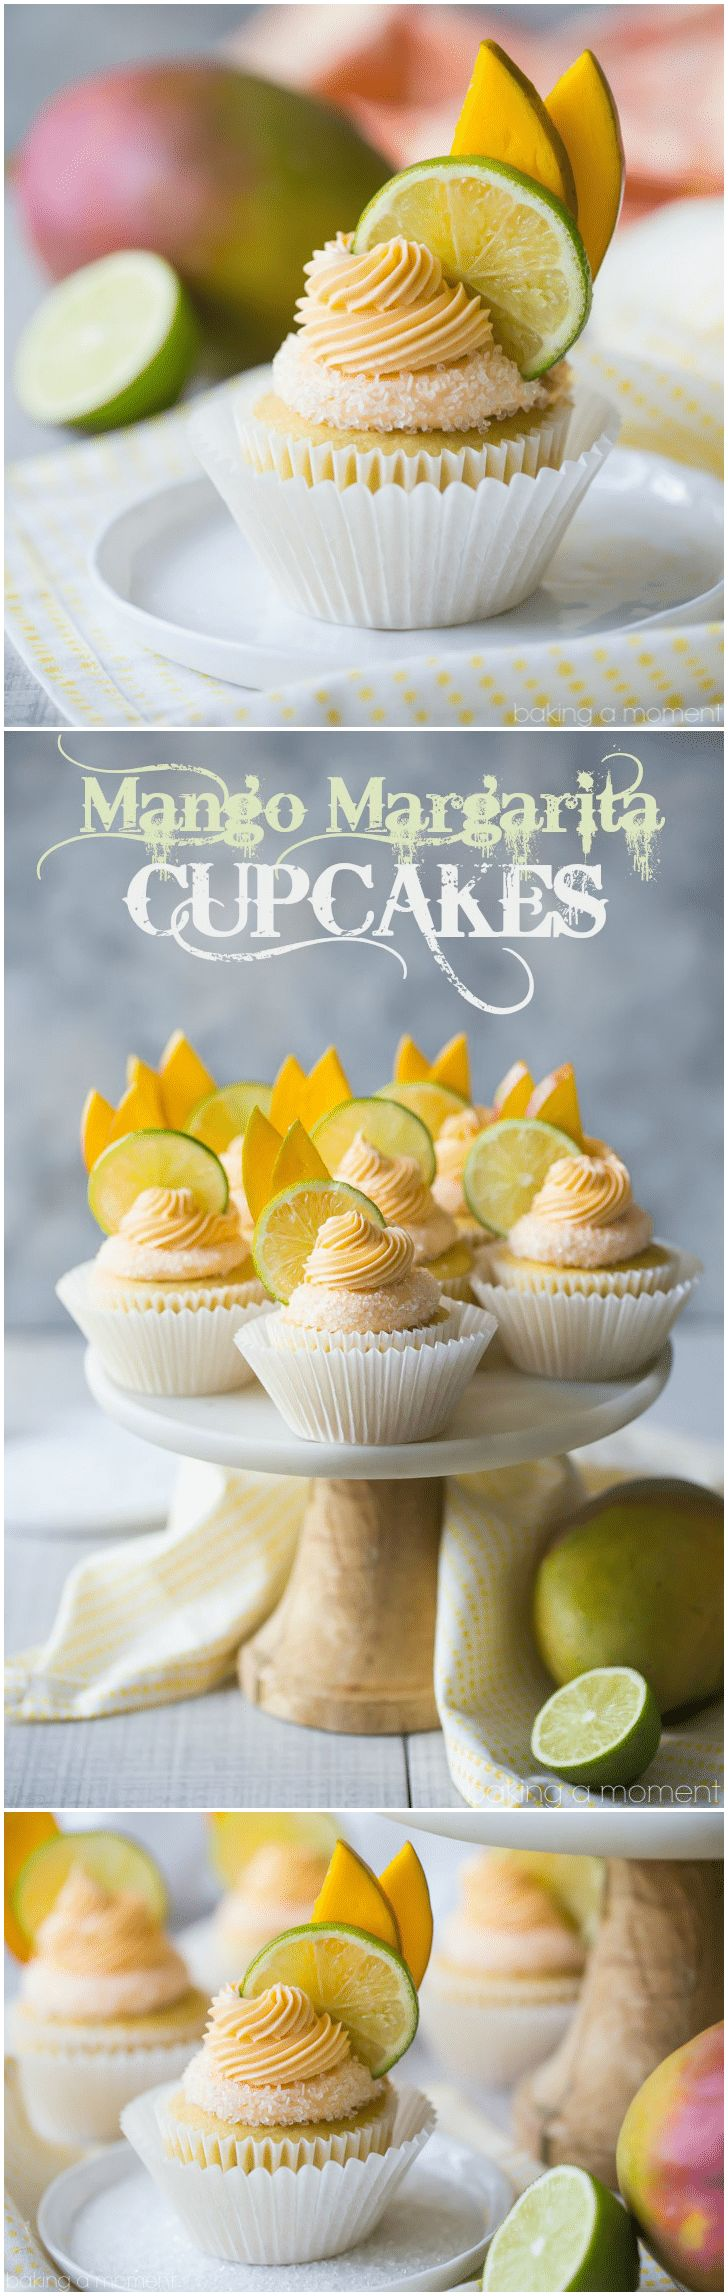 Mango Margarita Cupcakes: the flavors in this cupcake were off the charts! Just like sipping on my favorite cocktail, with lots of sweet mango, fresh lime, and a kick of tequila. food desserts cupca